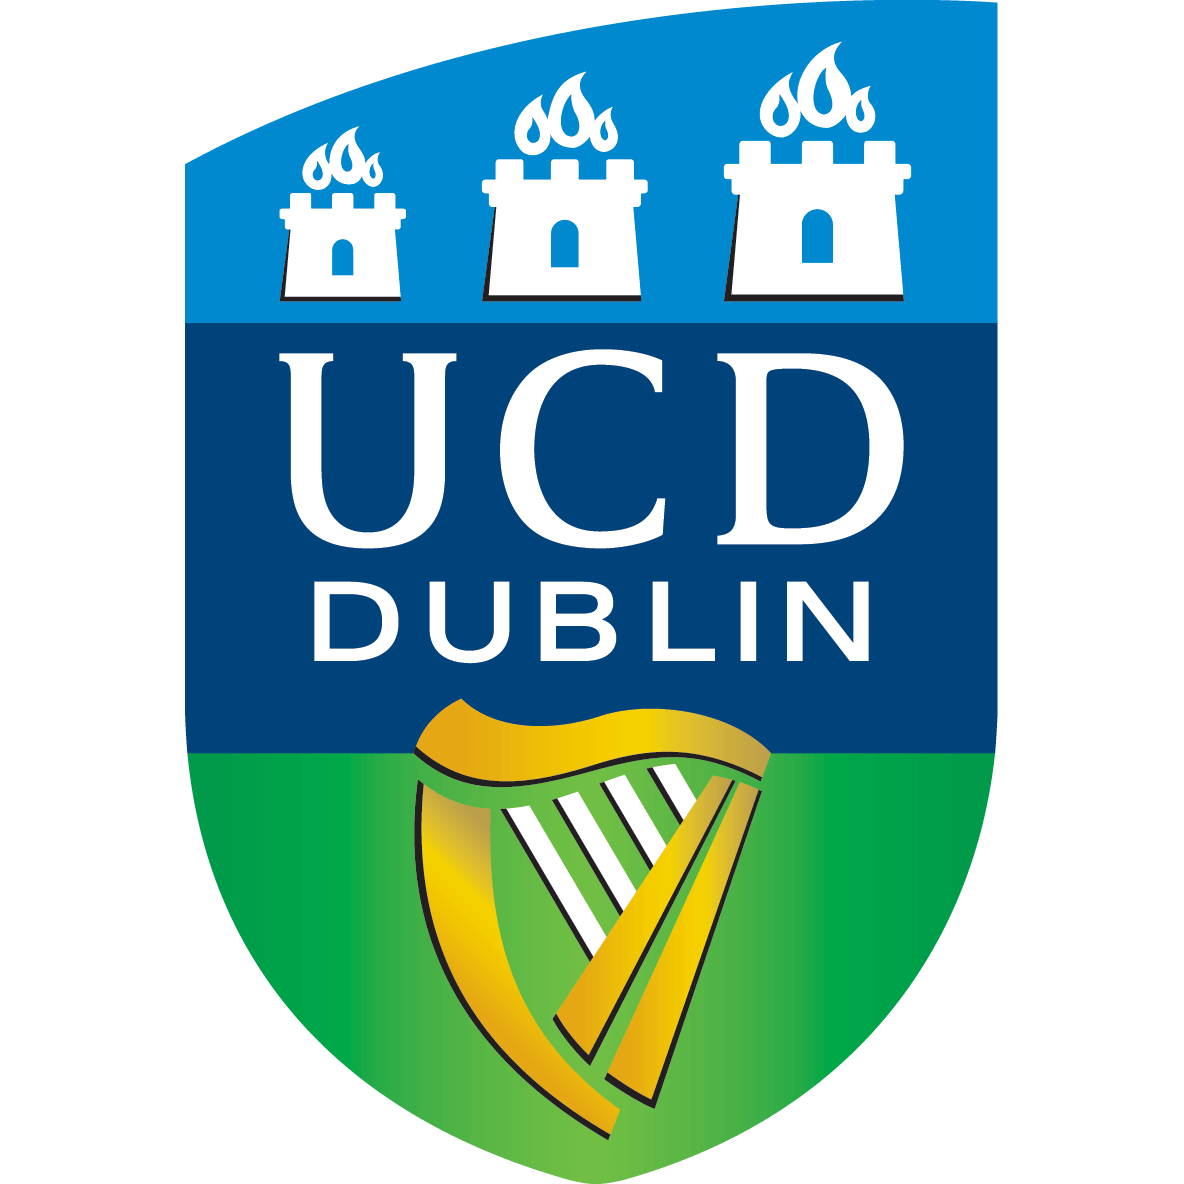 UCD Michael Smurfit Graduate Business School Scholarship programs